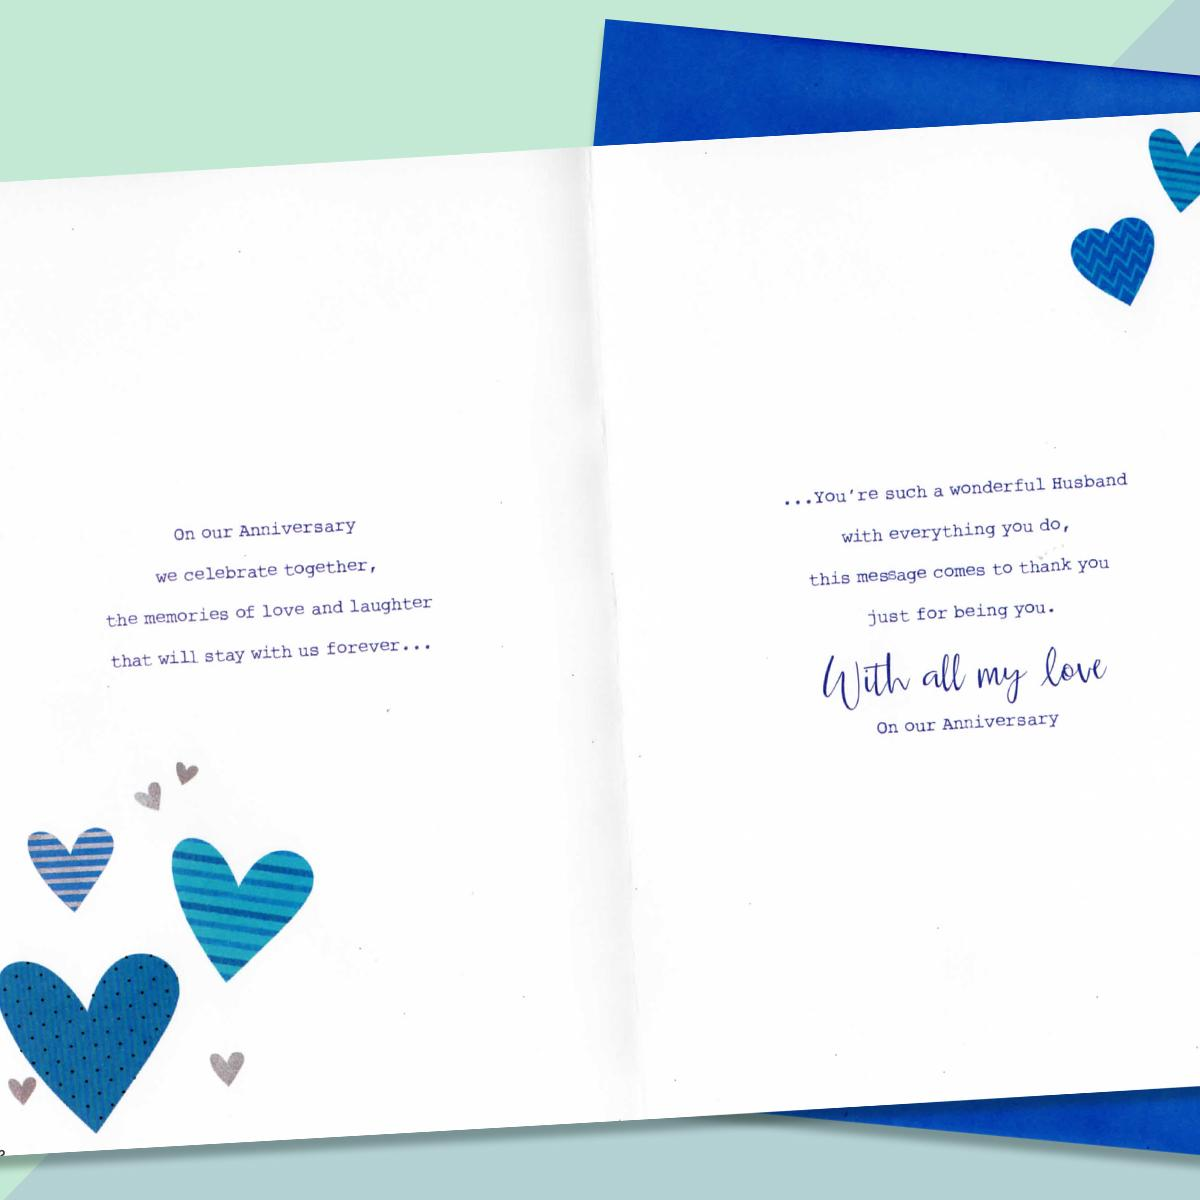 Inside Of Husband Anniversary Card To Show Printed Text